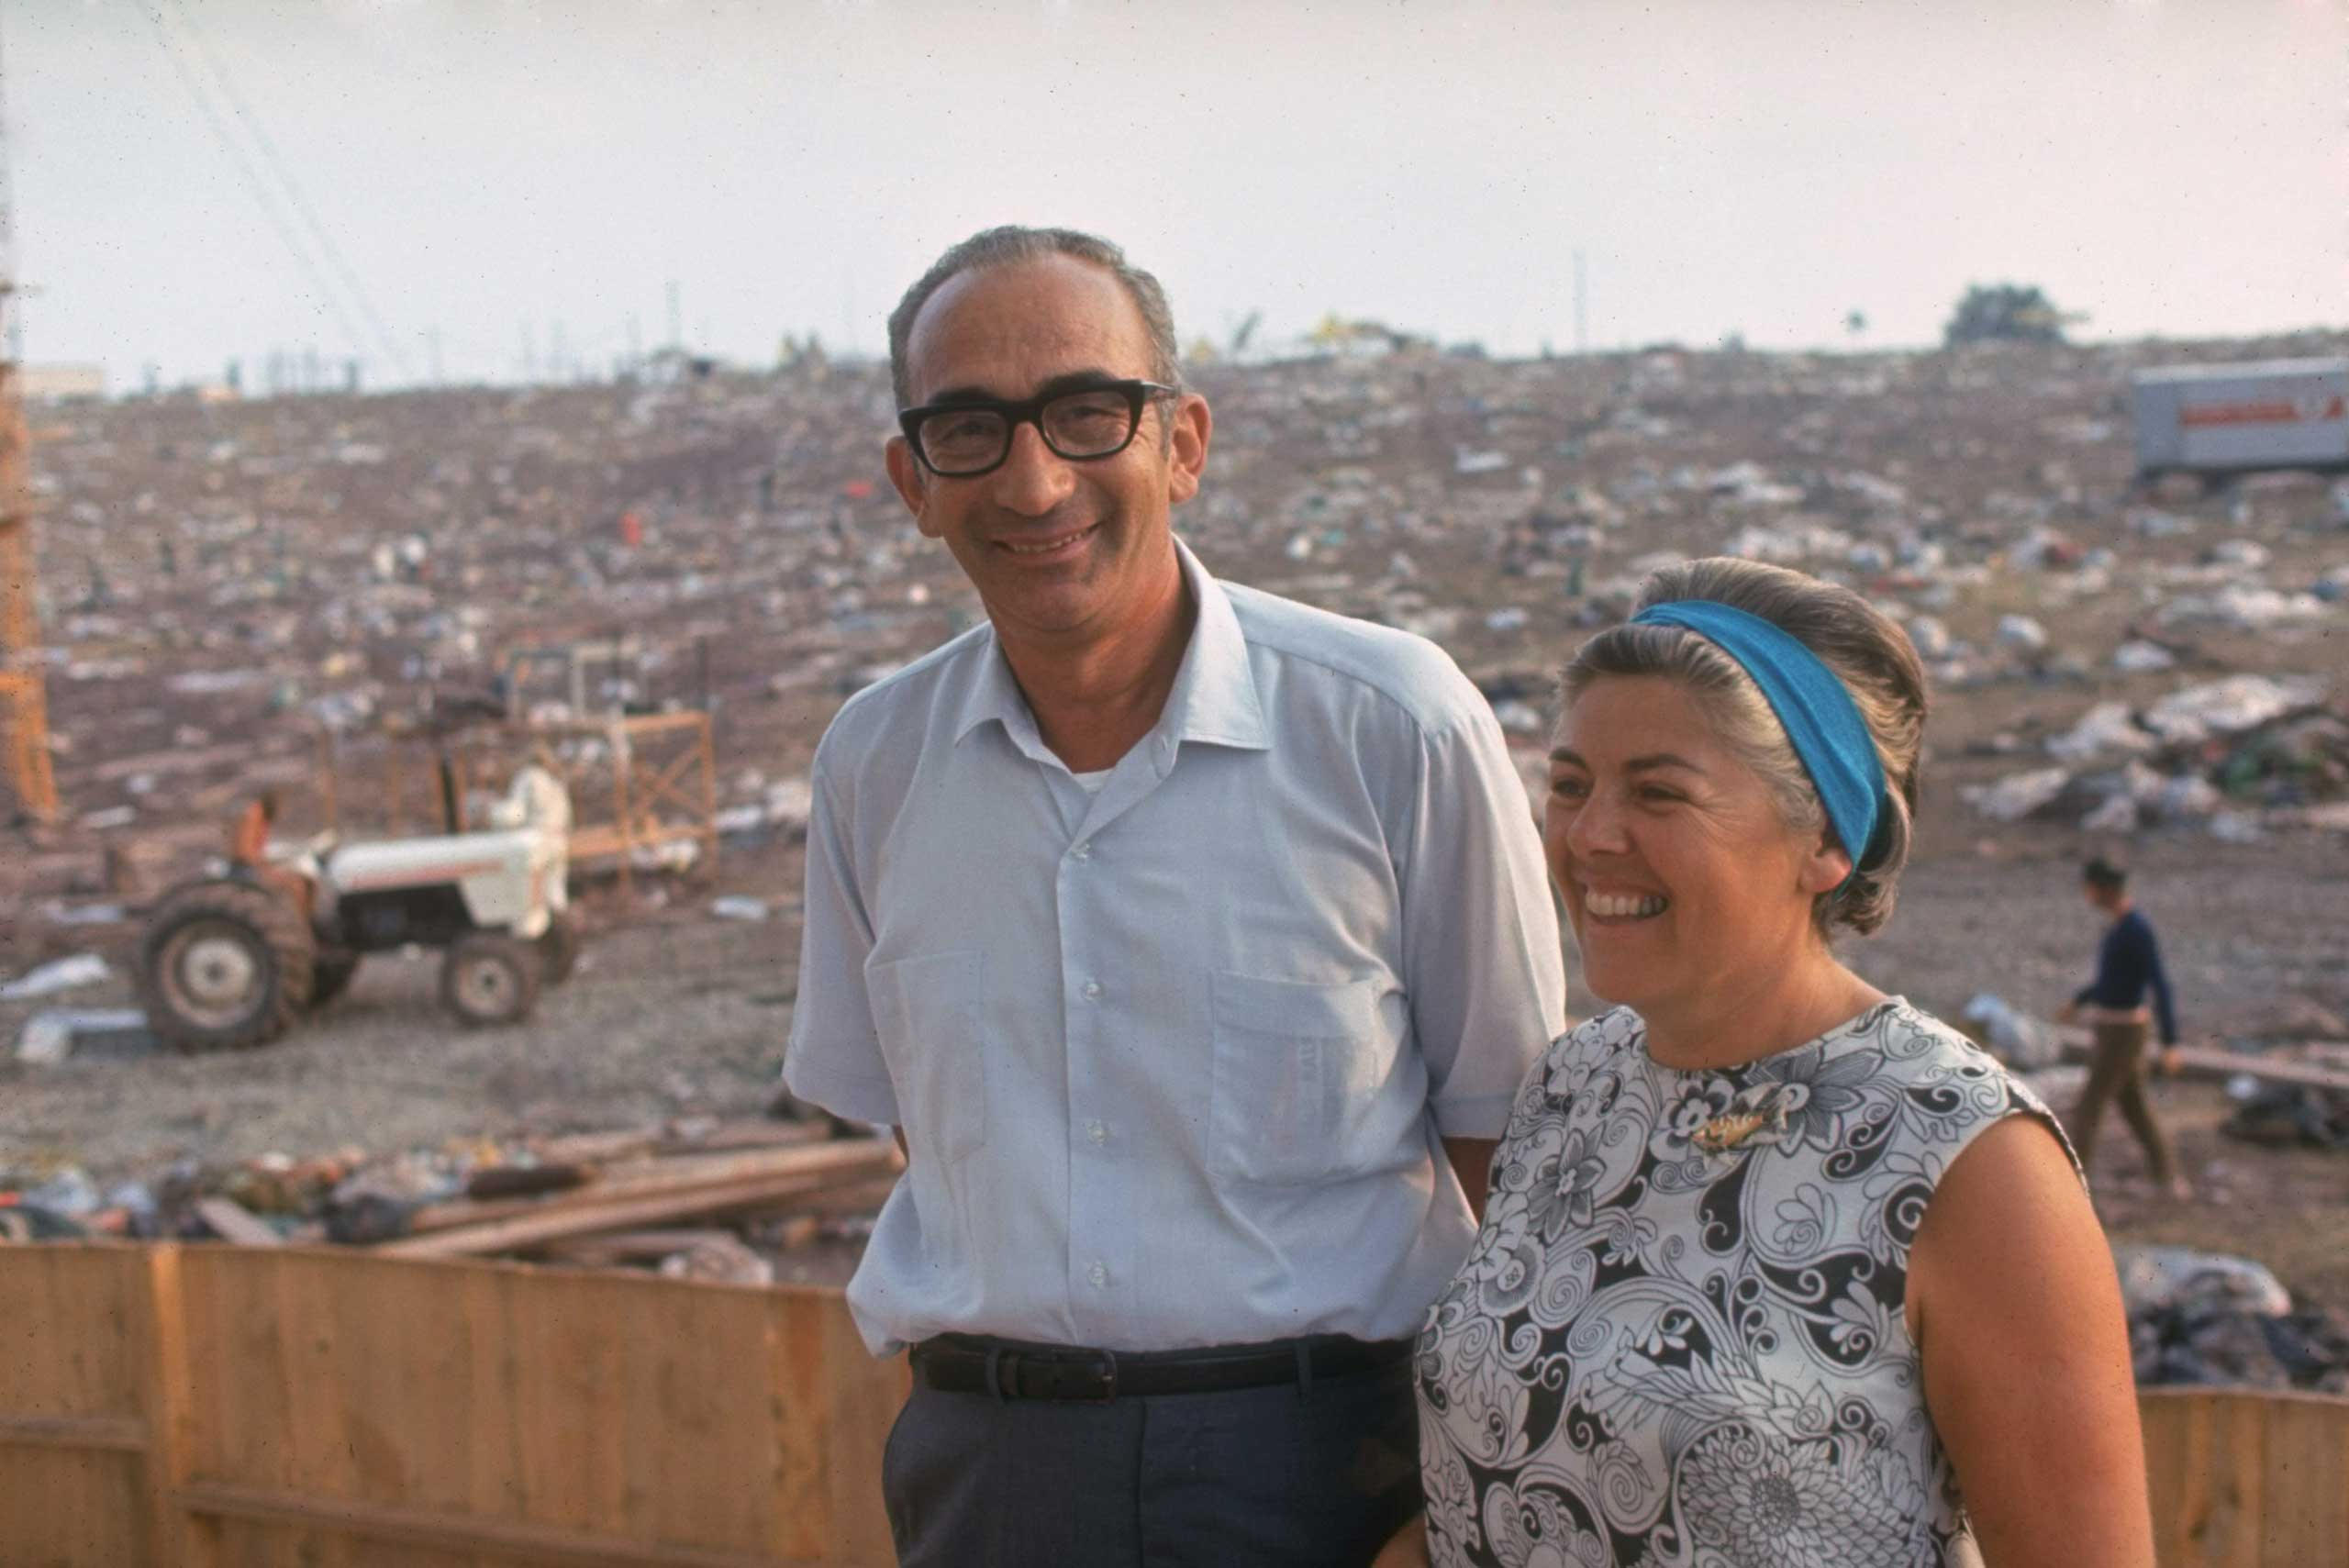 Not published in LIFE. Max and Miriam Yasgur on their land after the Woodstock Music & Art Fair, August 1969.